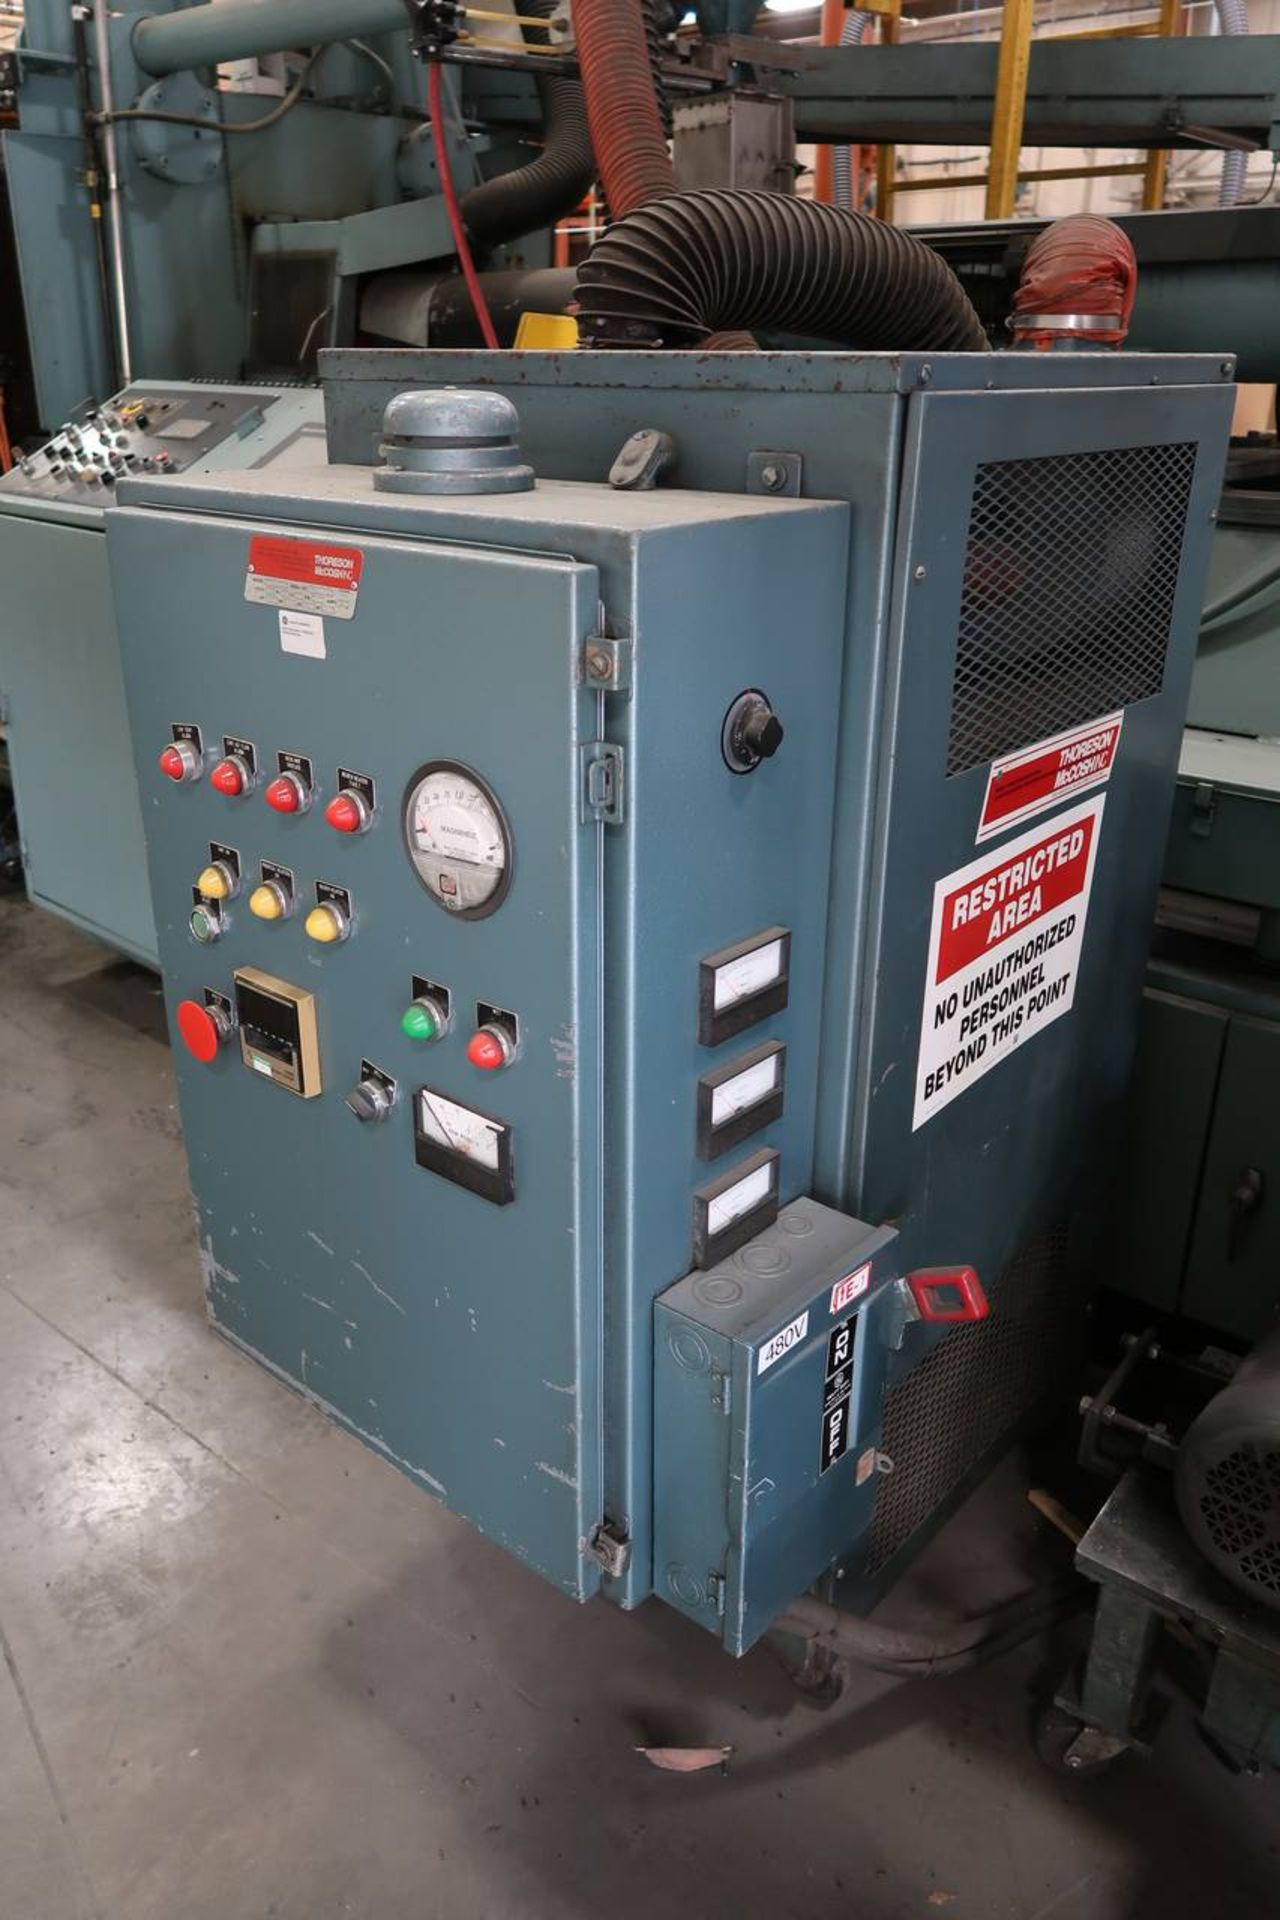 1986 HPM 400-TP-20 400-Ton Thermo Plastic Injection Molding Press - Image 37 of 40